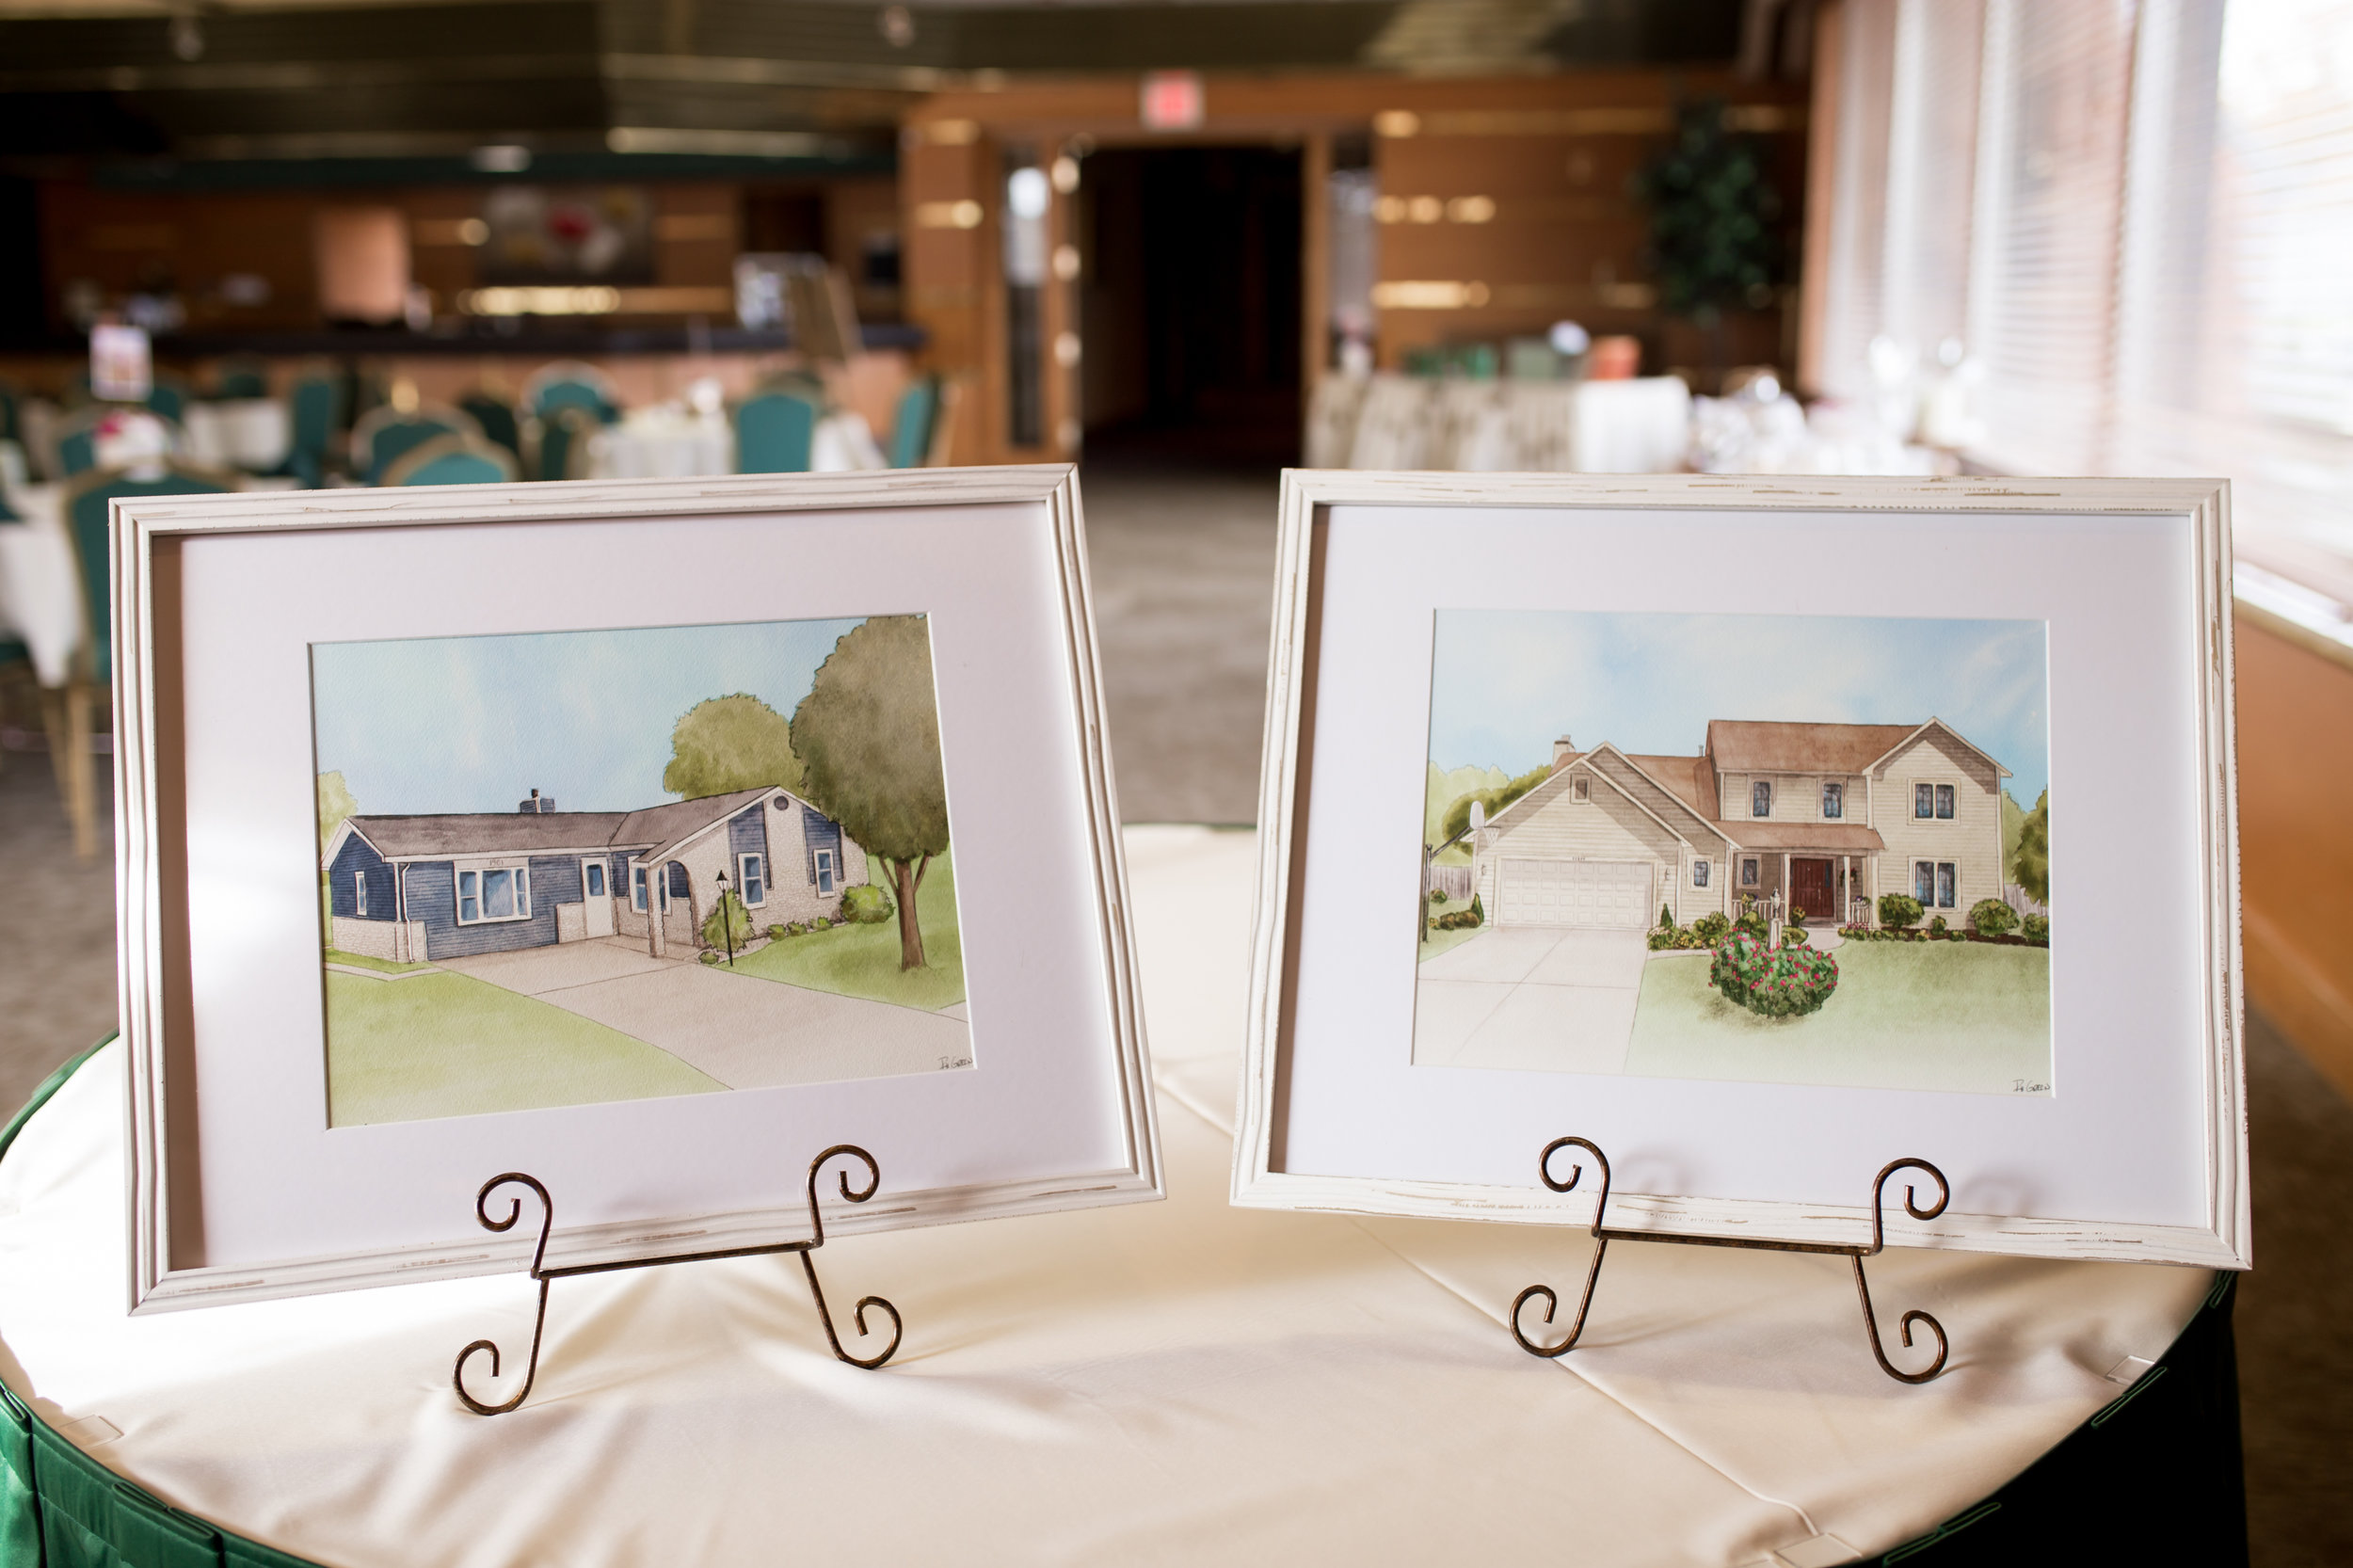 Client had portraits of their childhood homes created as thank you gifts to their parents at their wedding. Client provided photo of the artwork framed and matted on display at their reception.